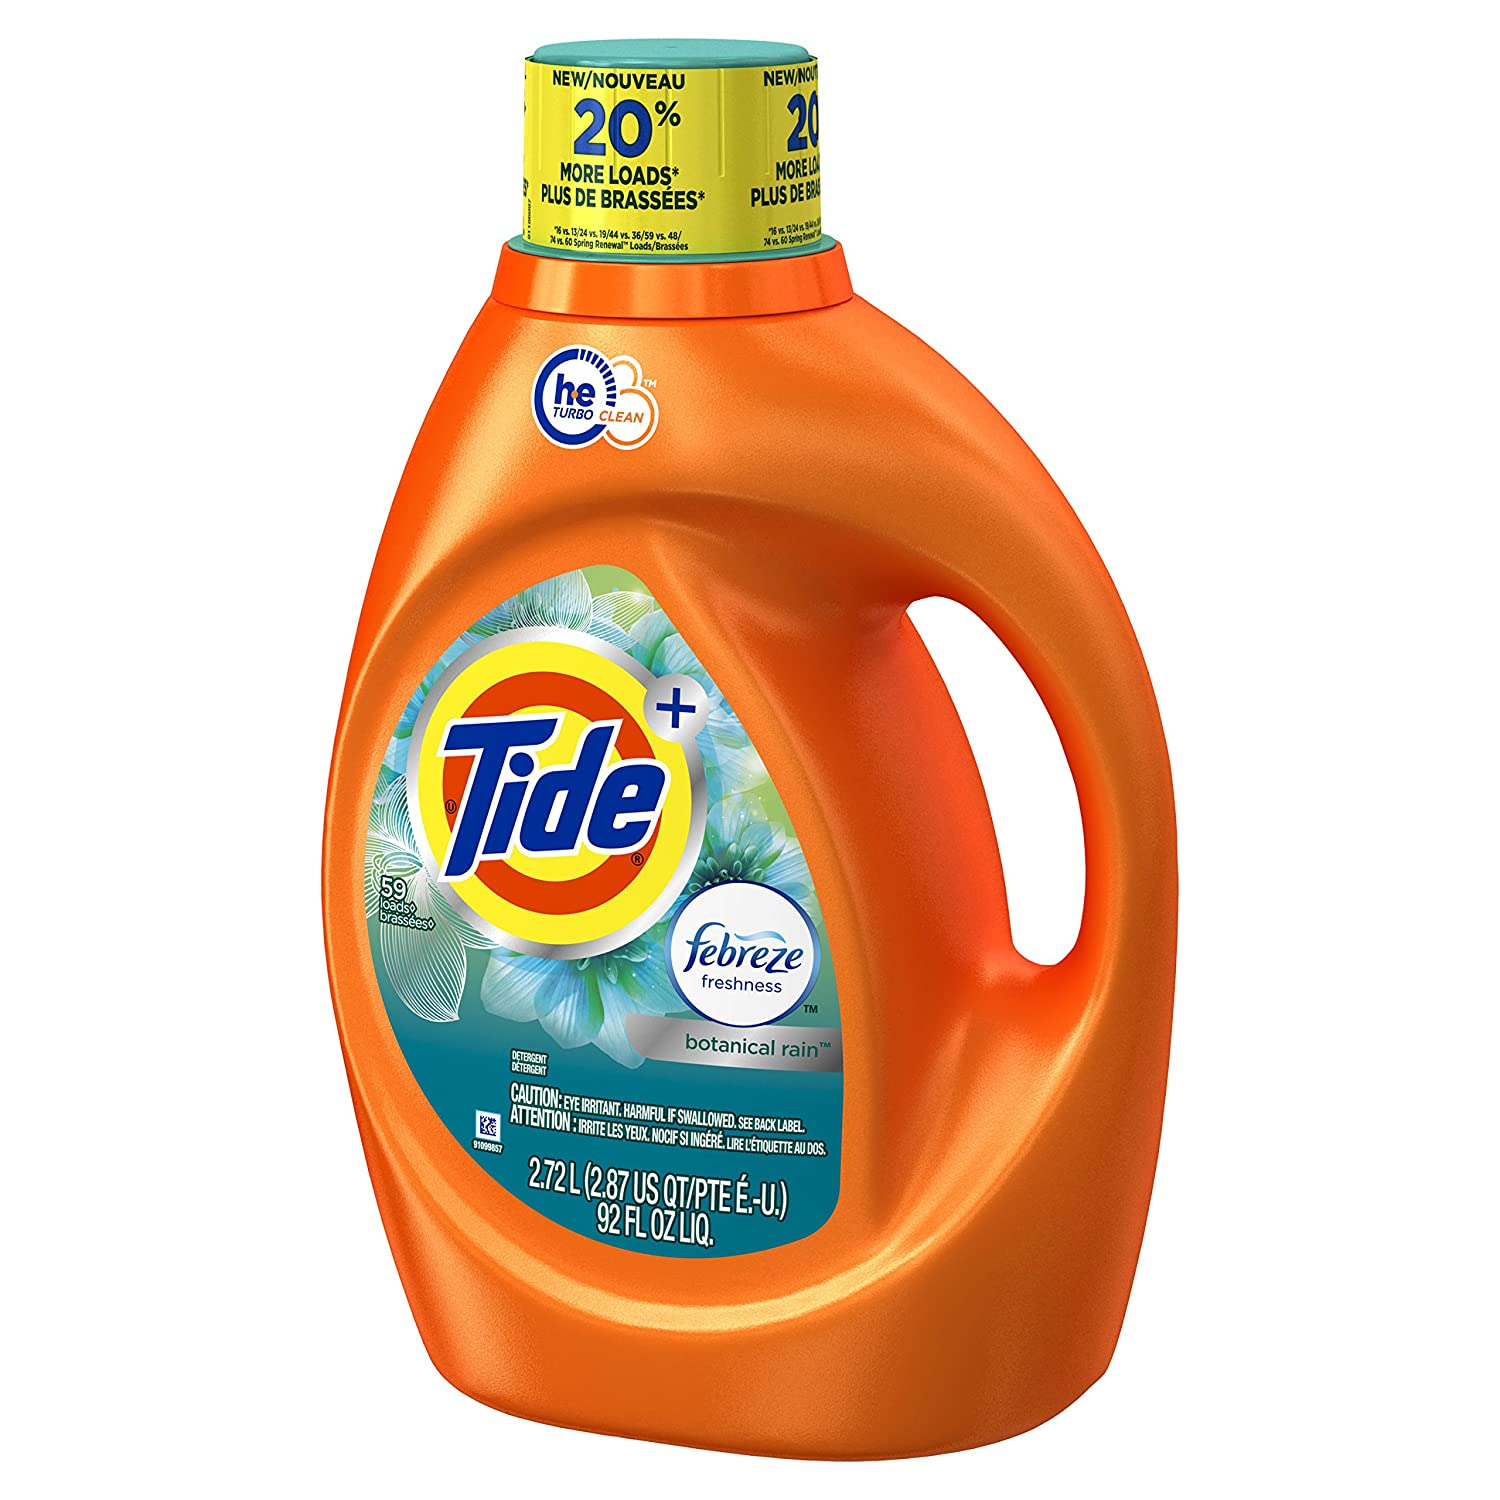 Amazon.com: Tide 59 Loads Plus Febreze Freshness Botanical Rain He Turbo Clean Liquid Laundry Detergent, 92 Fluid Ounce (Packaging May Vary): Health ...